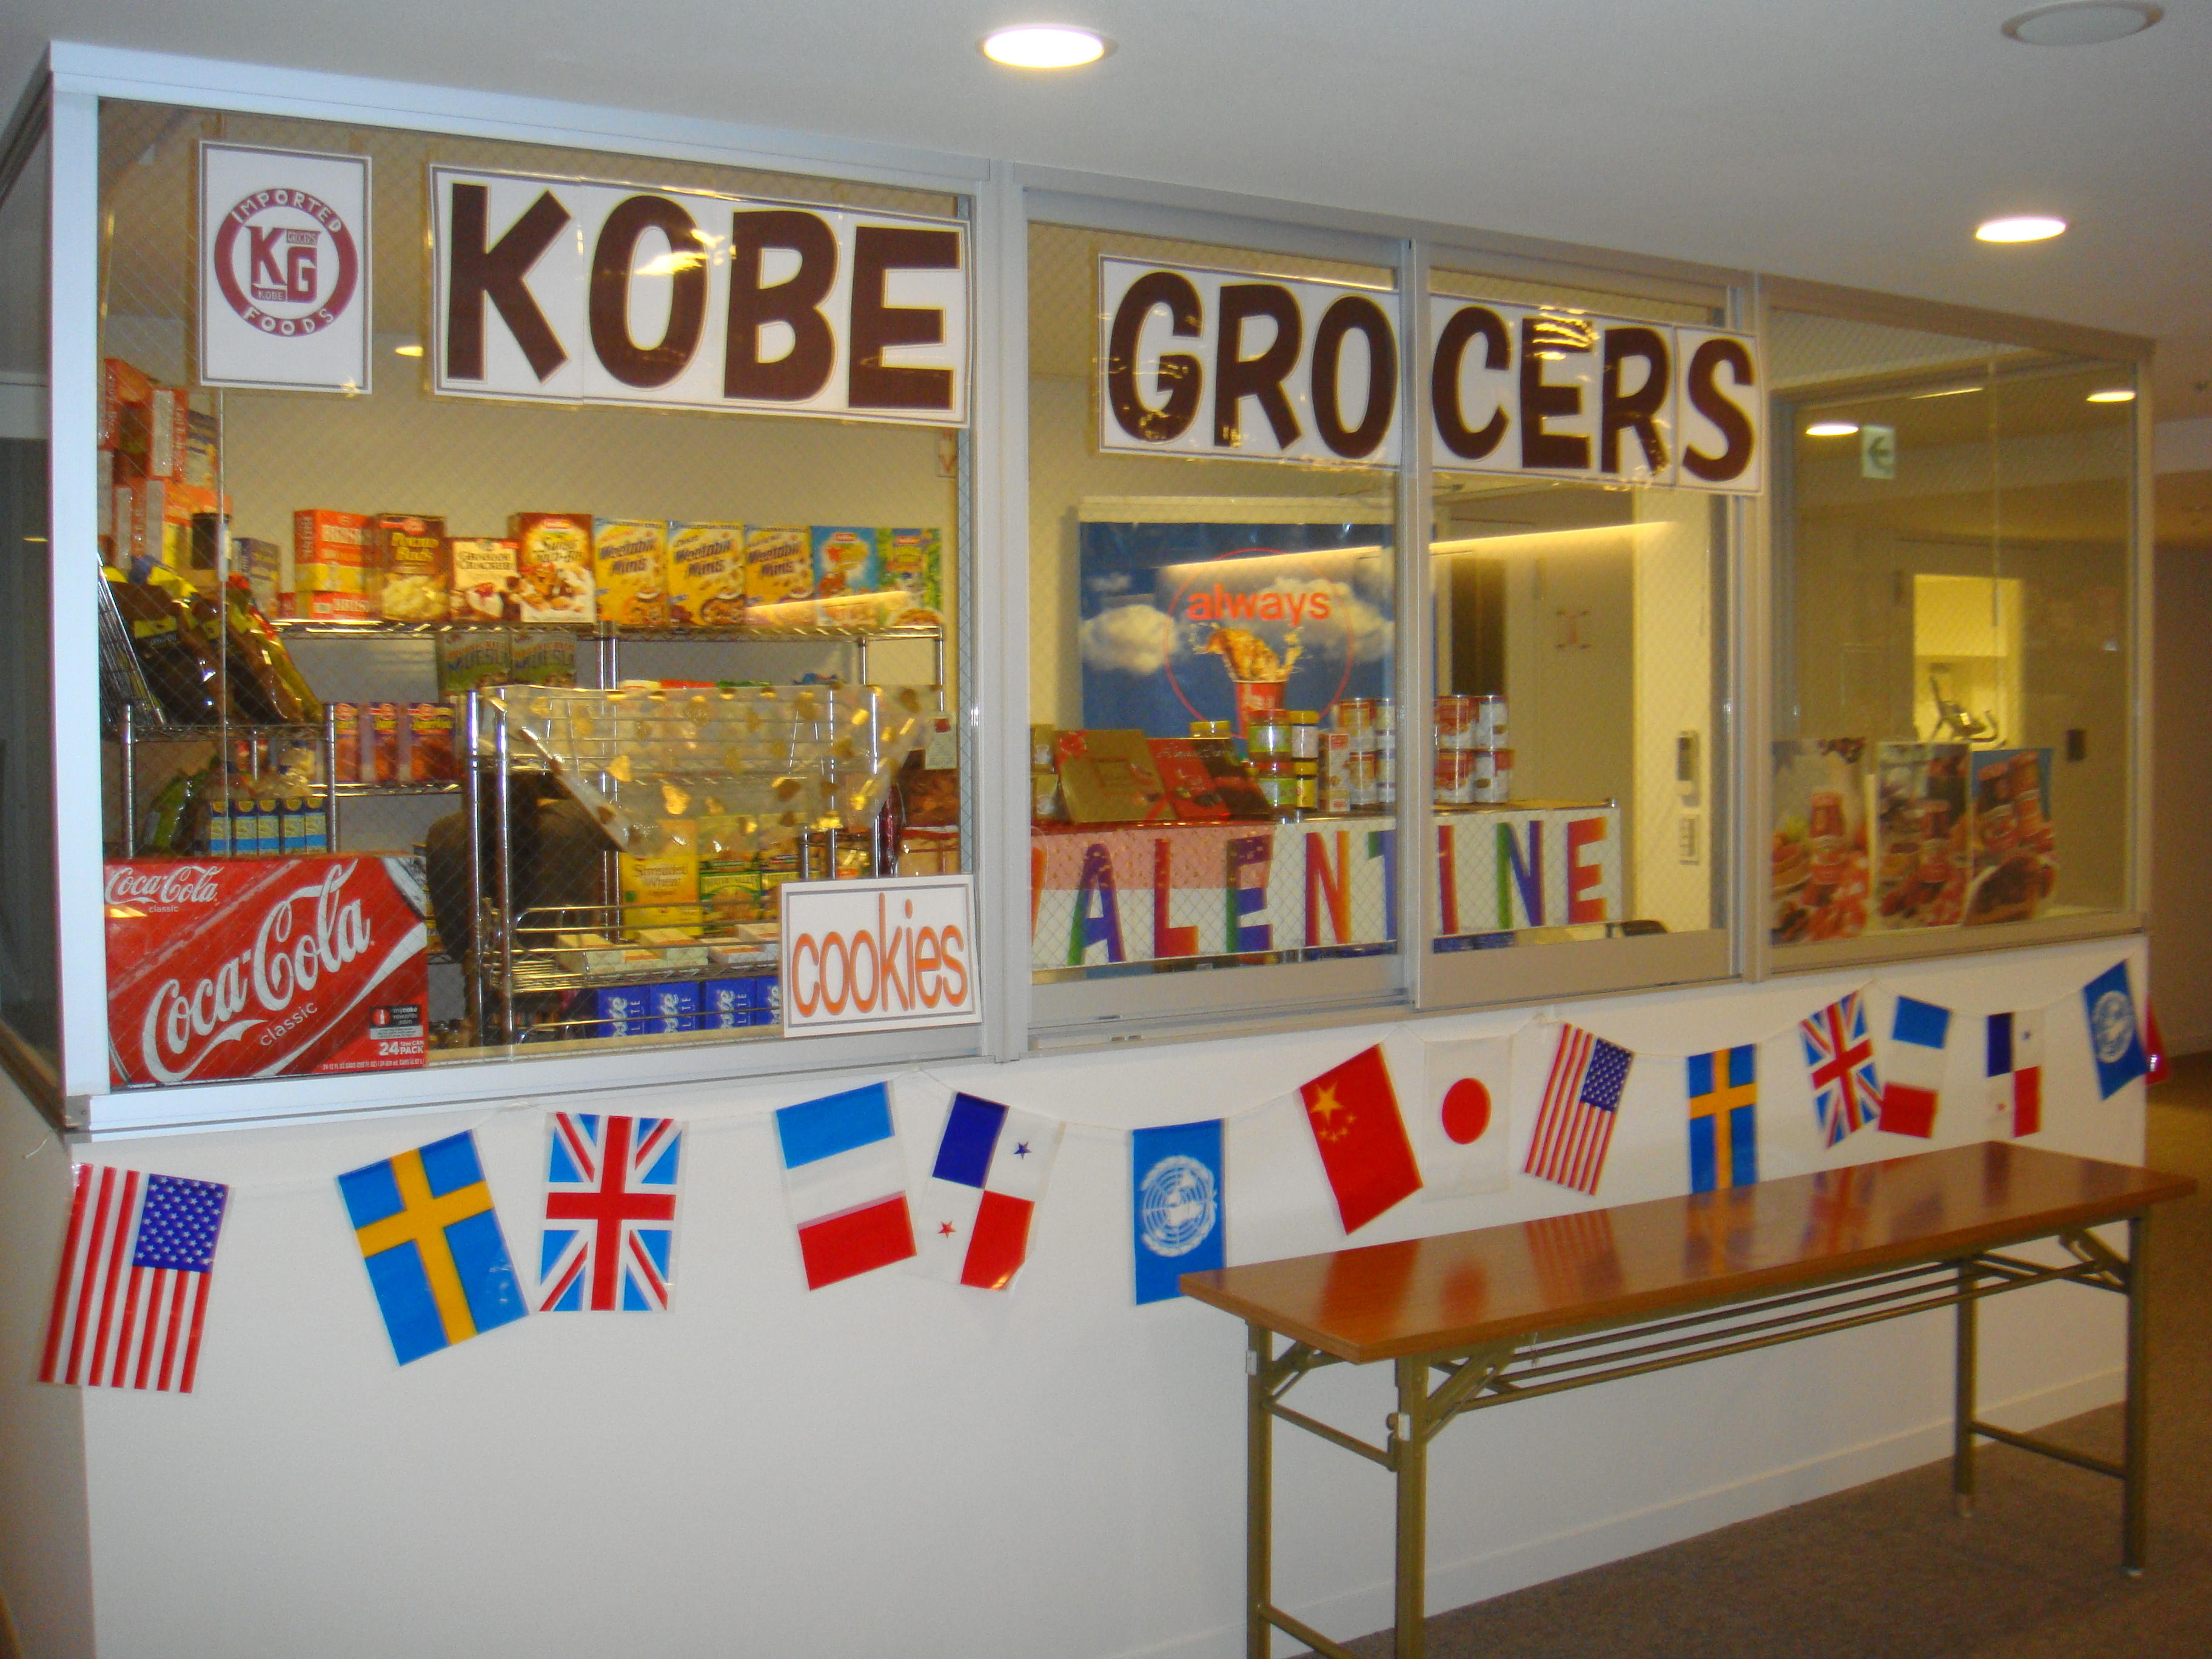 ☆ KOBE GROCERS DAY ! ☆